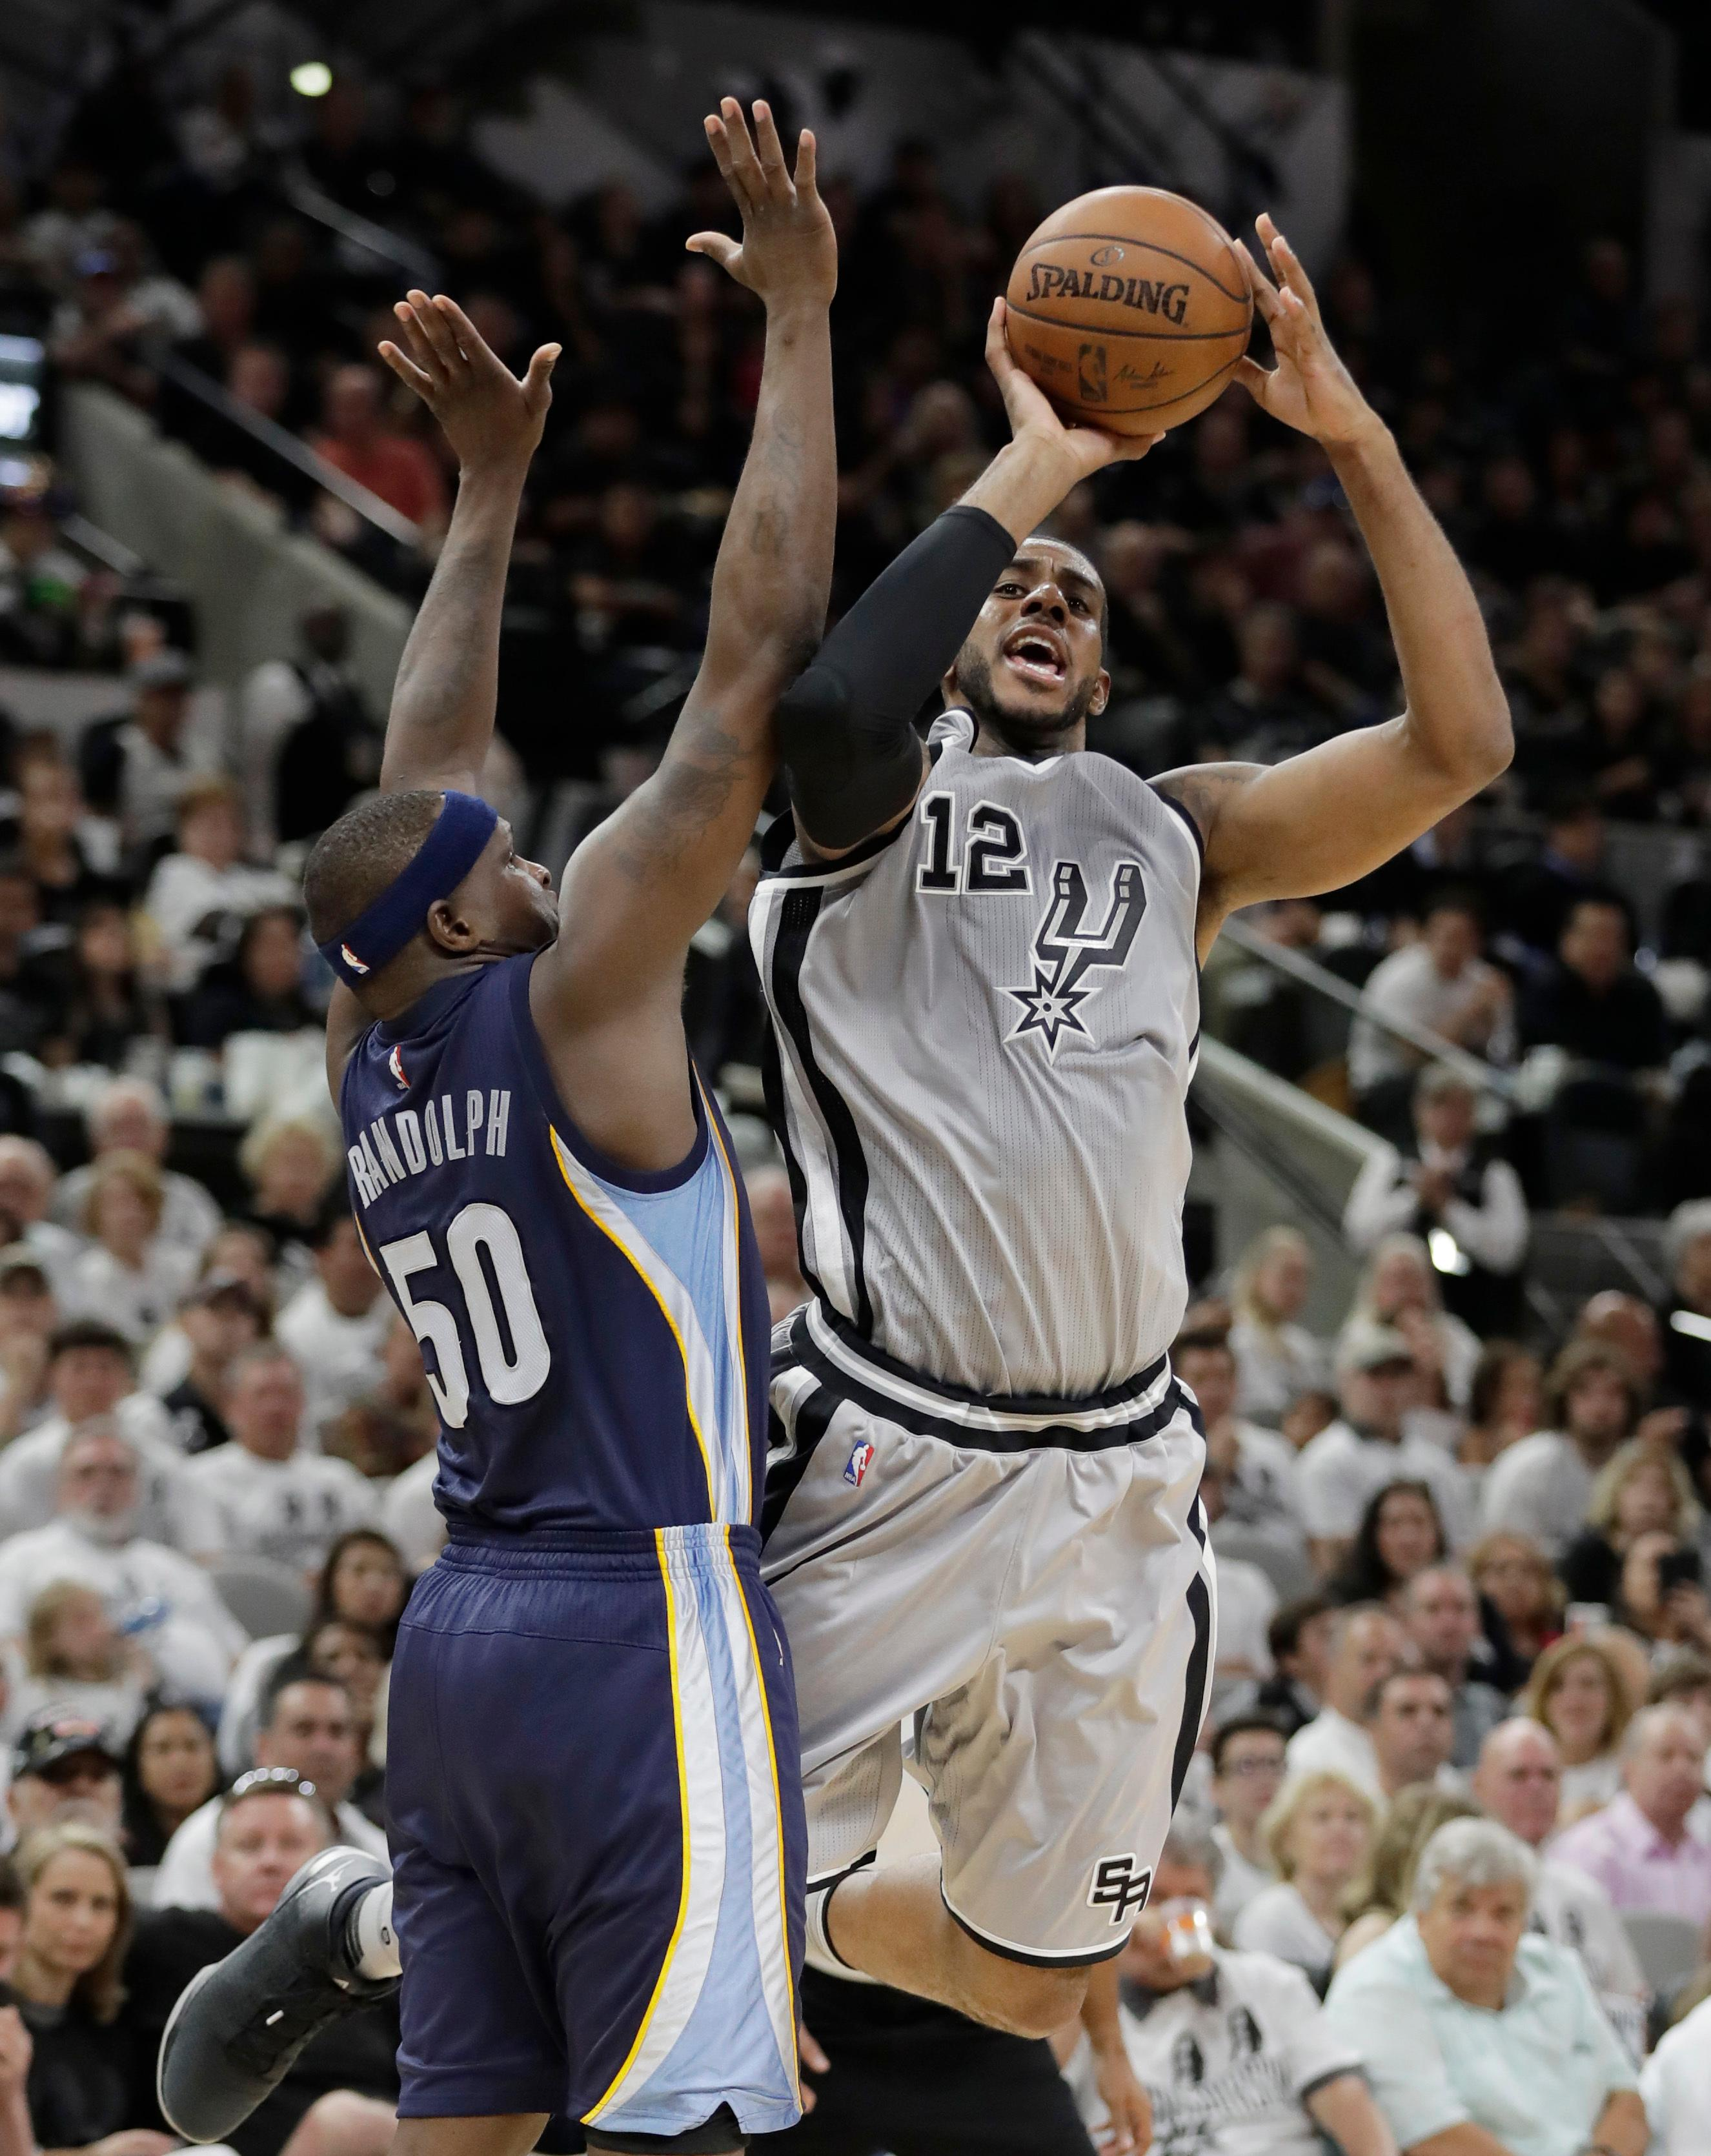 San Antonio Spurs forward LaMarcus Aldridge (12) shoots over Memphis Grizzlies forward Zach Randolph (50) during the second half in Game 1 of a first-round NBA basketball playoff series, Saturday, April 15, 2017, in San Antonio. (AP Photo/Eric Gay)